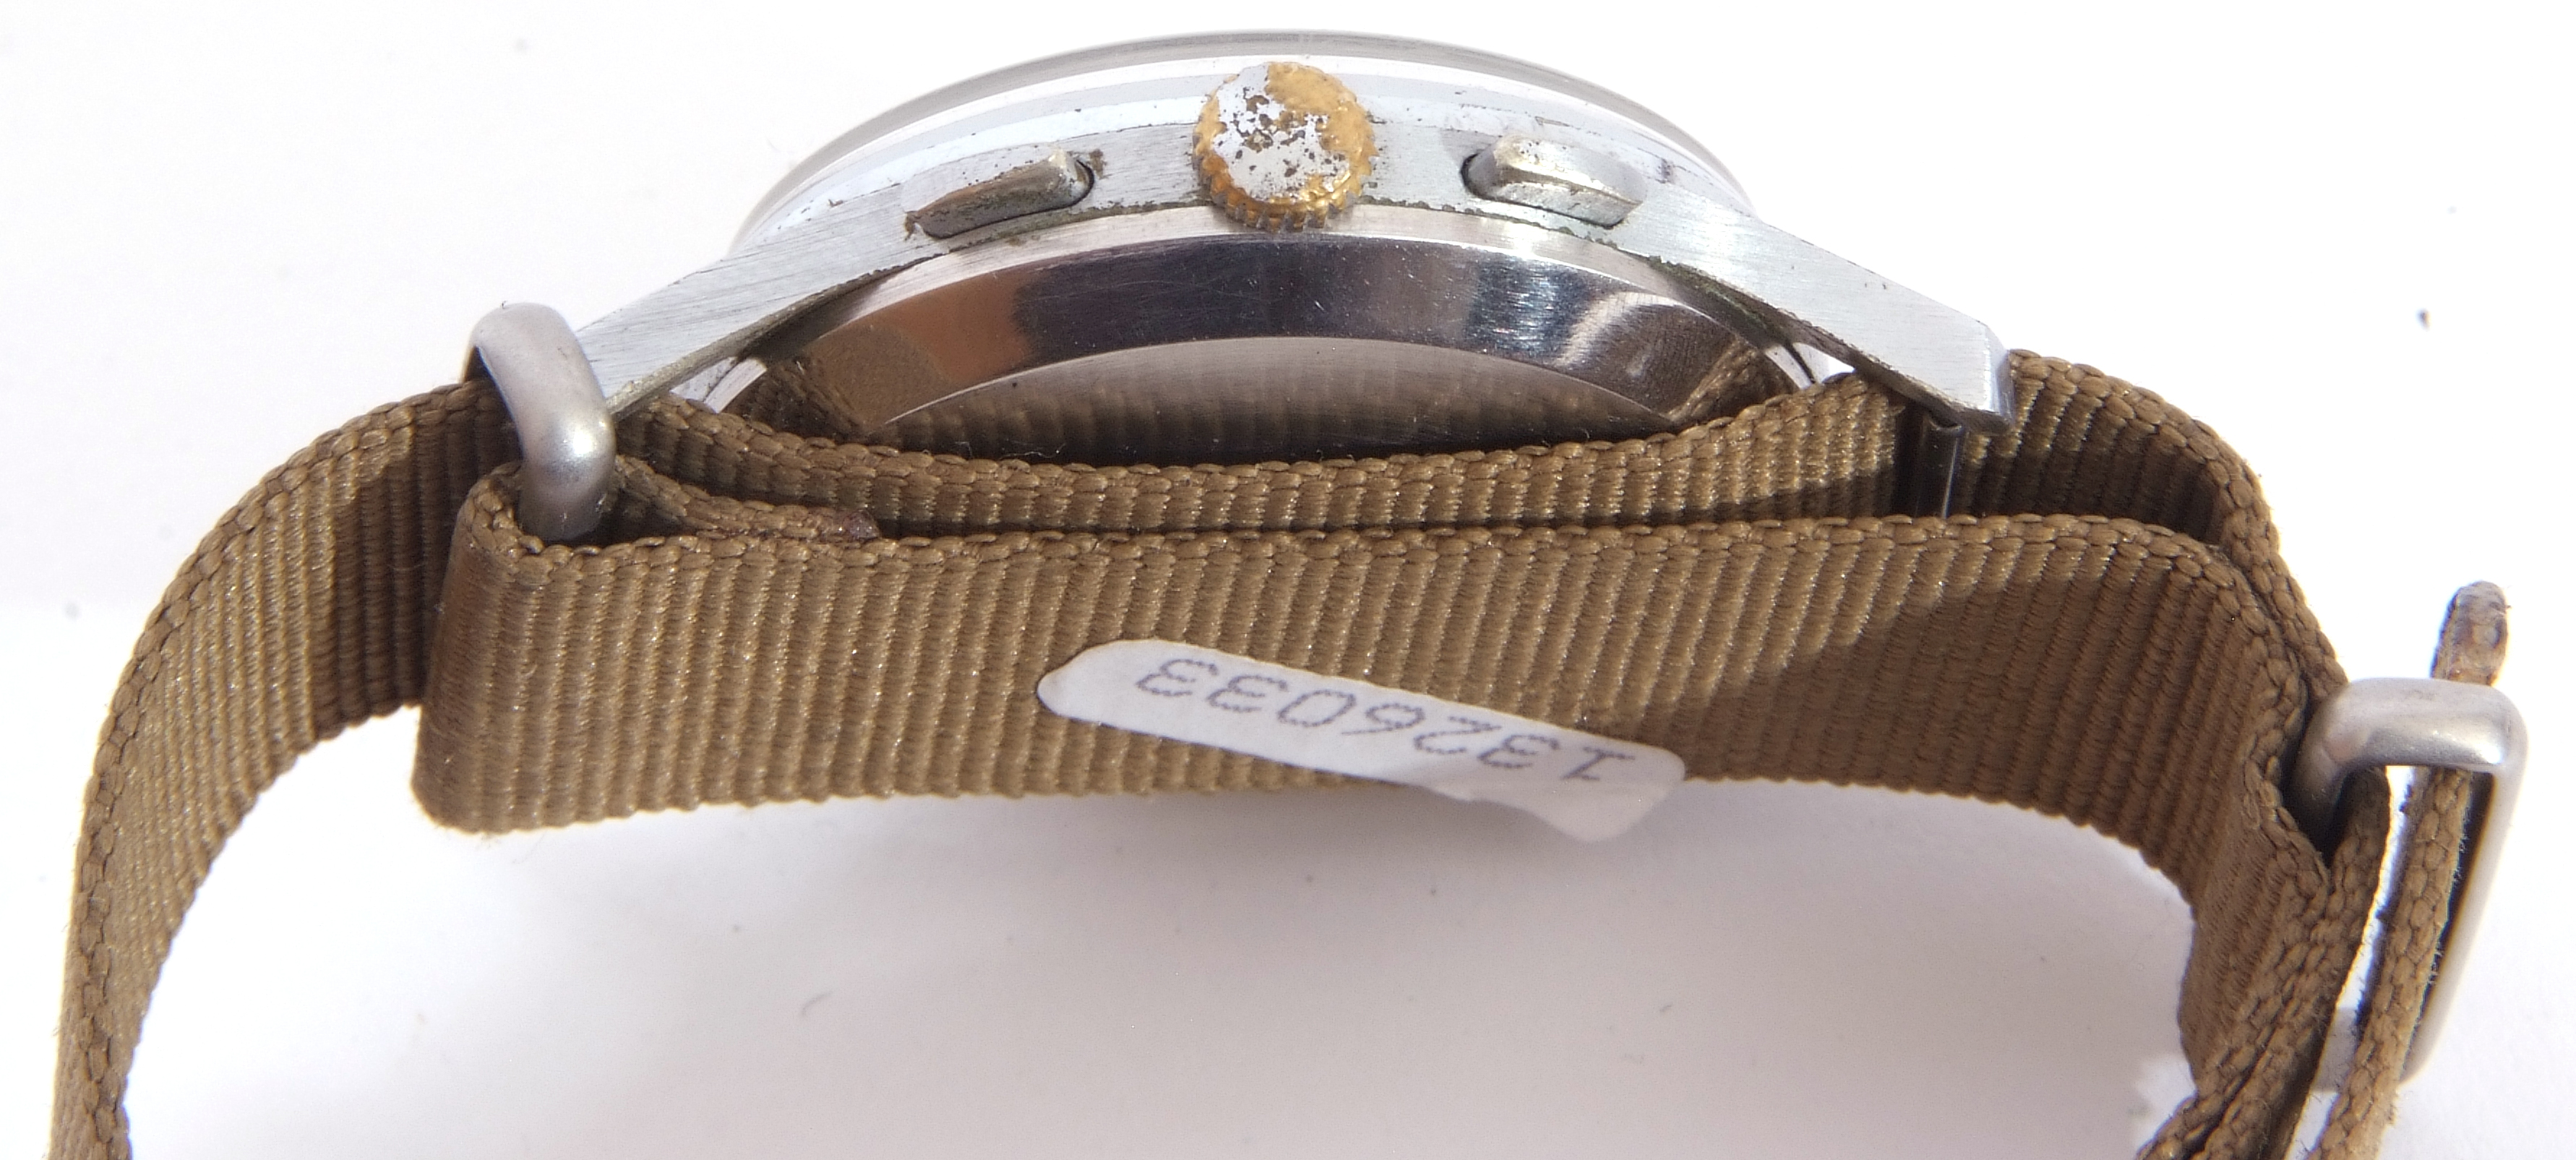 Third quarter of 20th century Sekonda centre seconds wrist chronograph watch case, stainless steel - Image 4 of 6